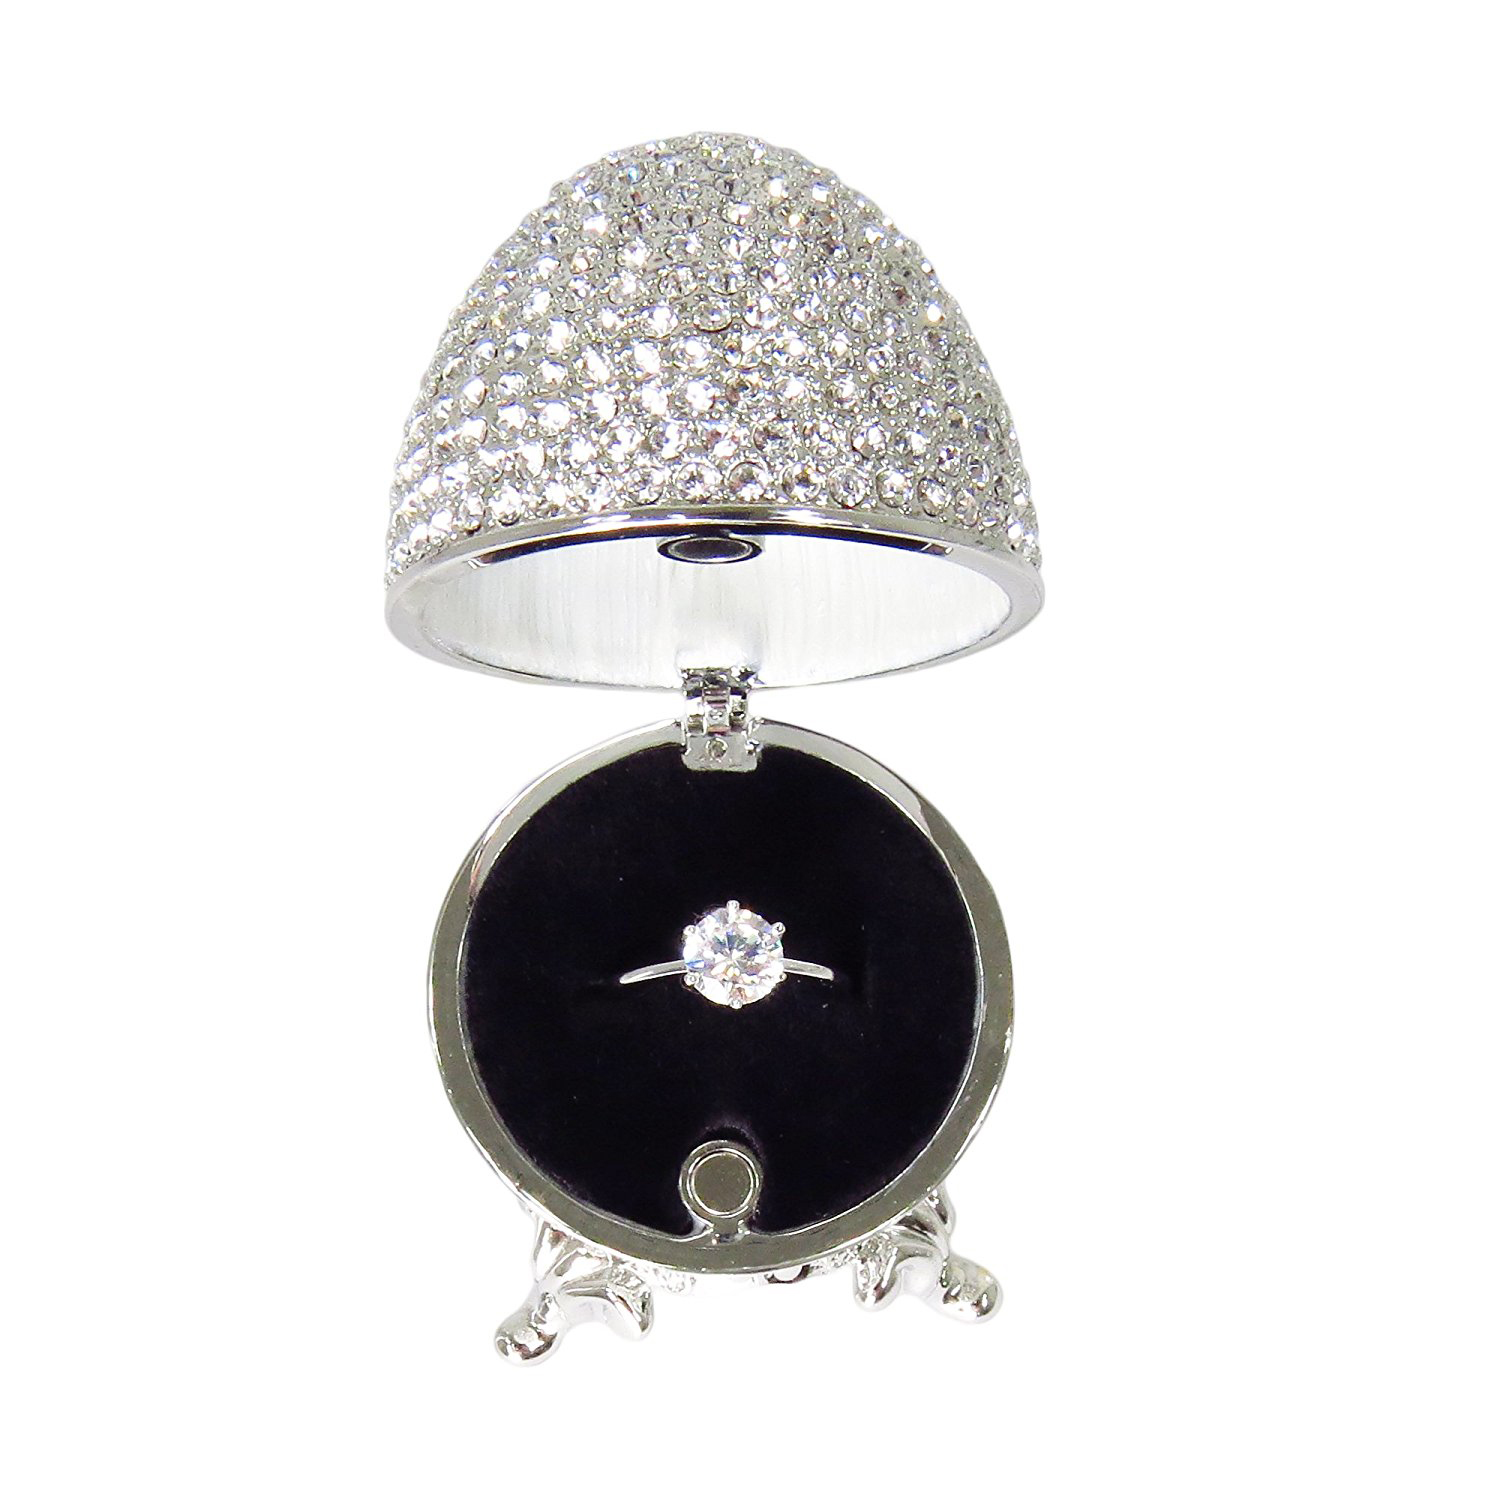 Stunning Swarovski Covered Silver Faberge Egg Jewelry Box